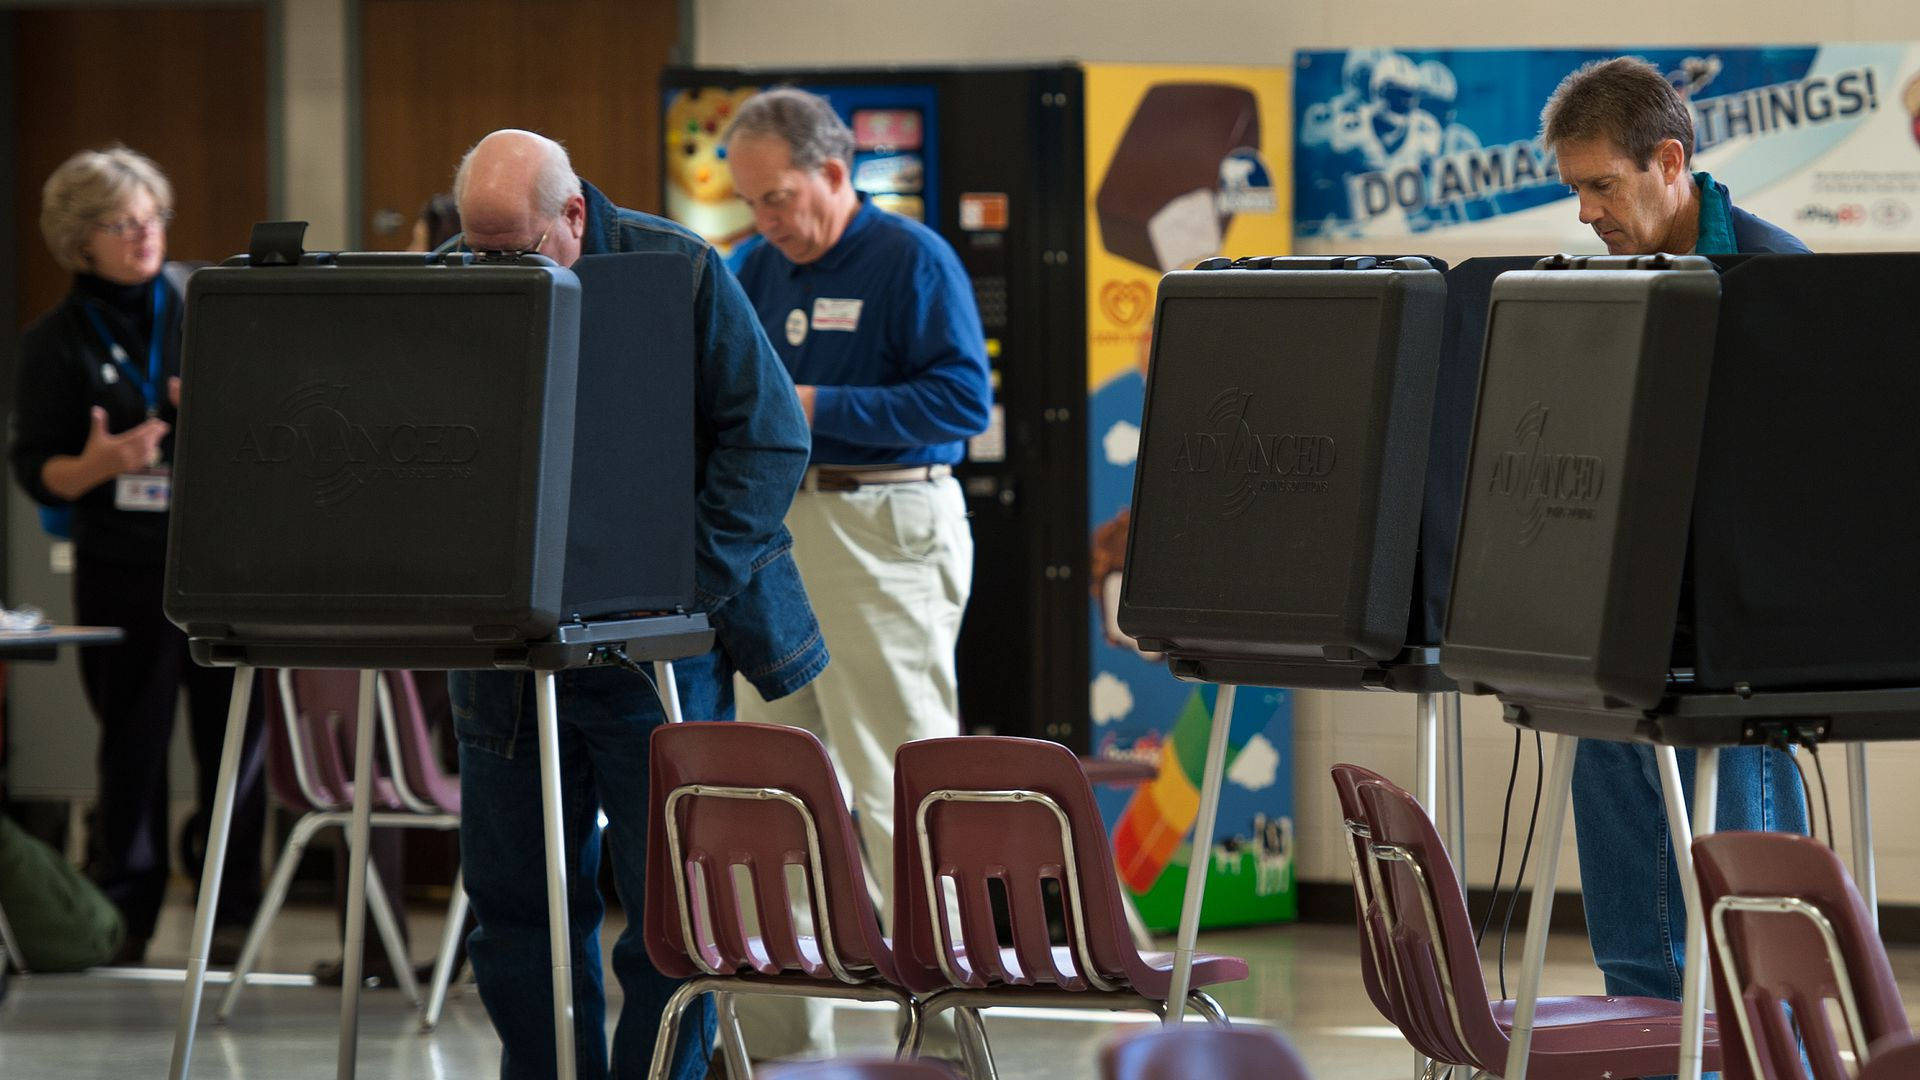 Microsoft posts code for election security software